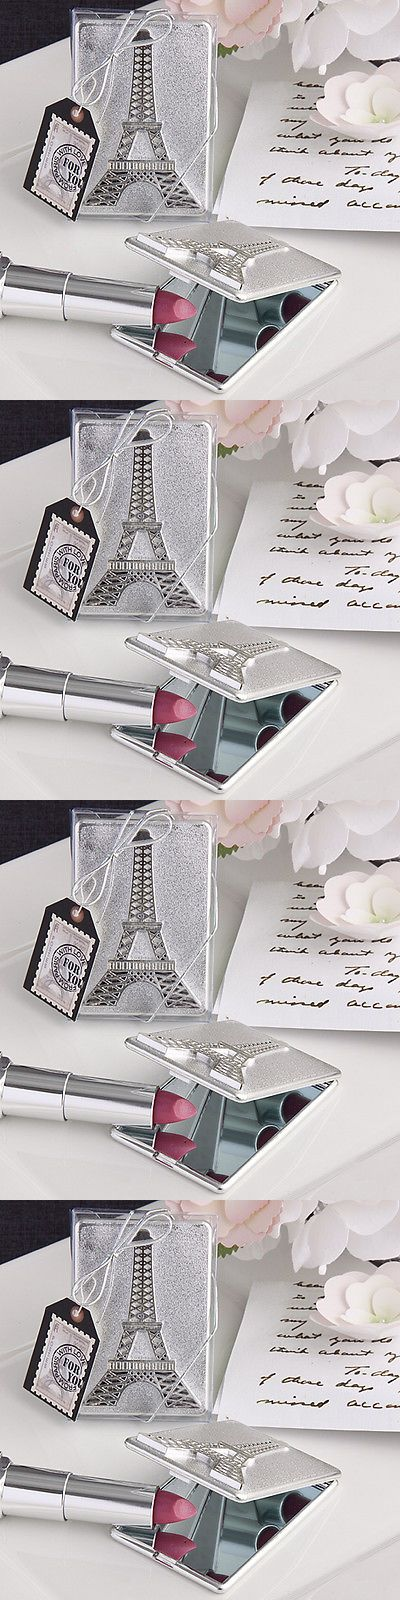 Favors and Party Bag Fillers 26385: 100 Eiffel Tower Mirror Compact Favors Paris Sweet Sixteen Wedding Event Lot -> BUY IT NOW ONLY: $101.99 on eBay!